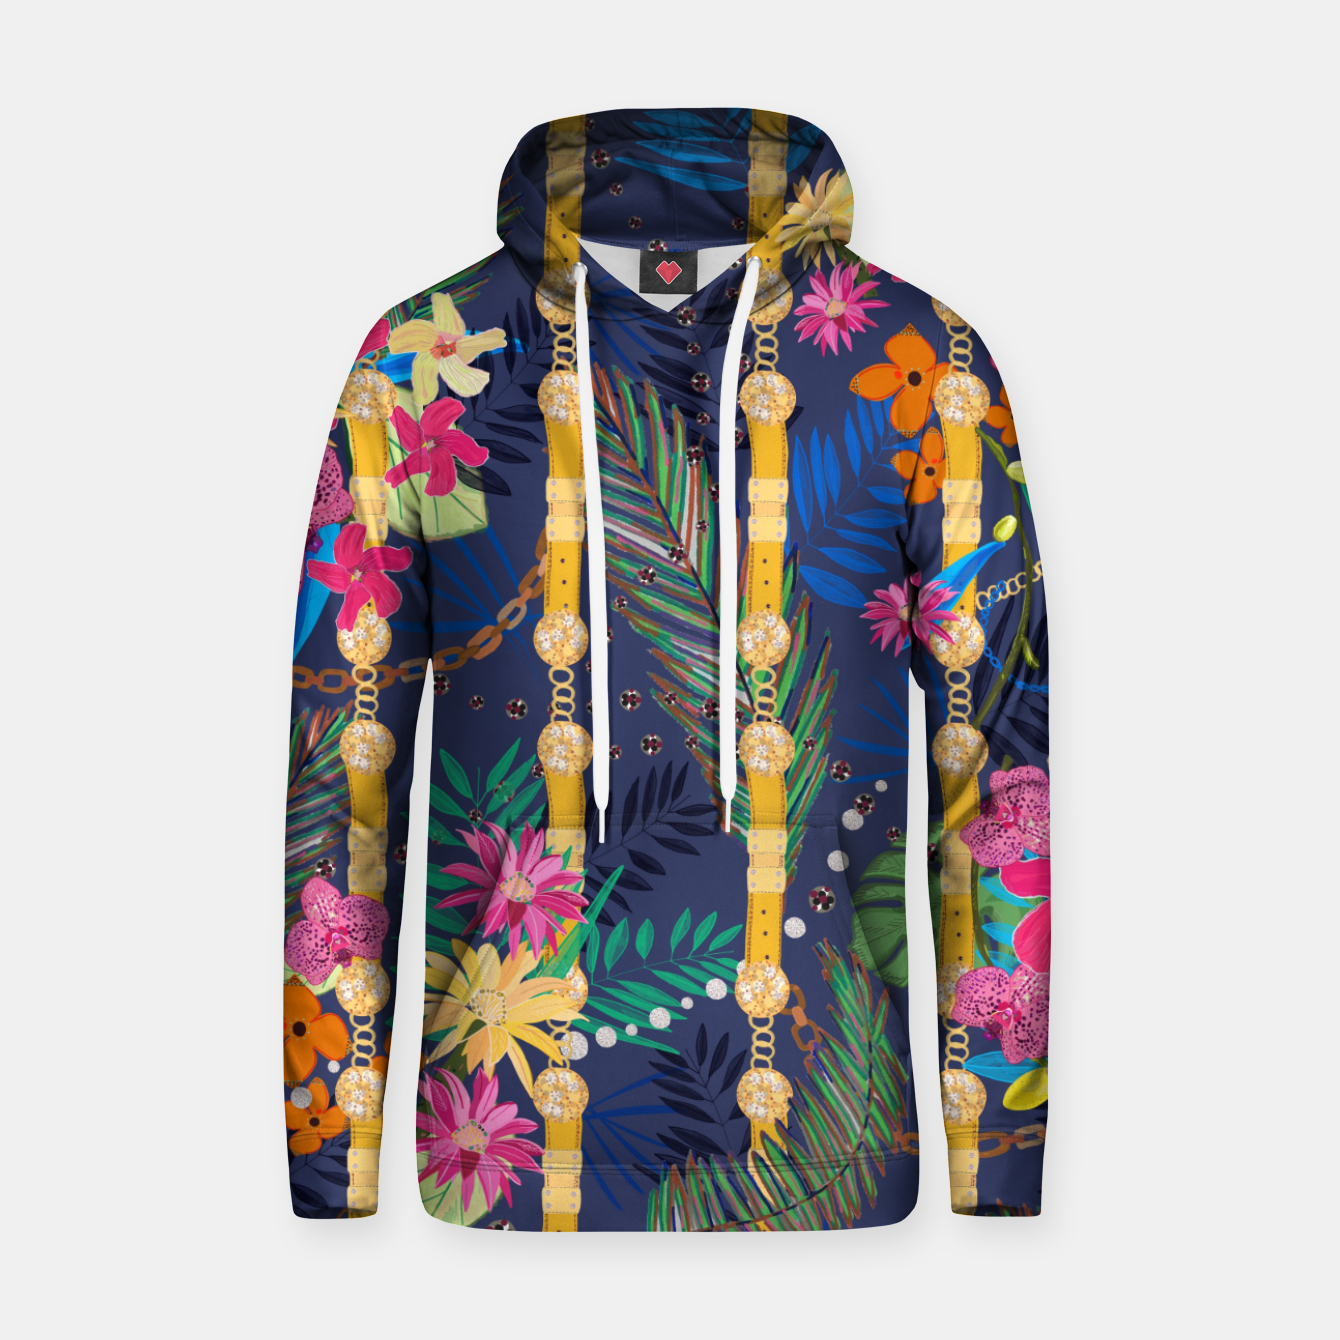 Zdjęcie Tropical flowers golden belt and chain vibrant colored trendy Hoodie - Live Heroes